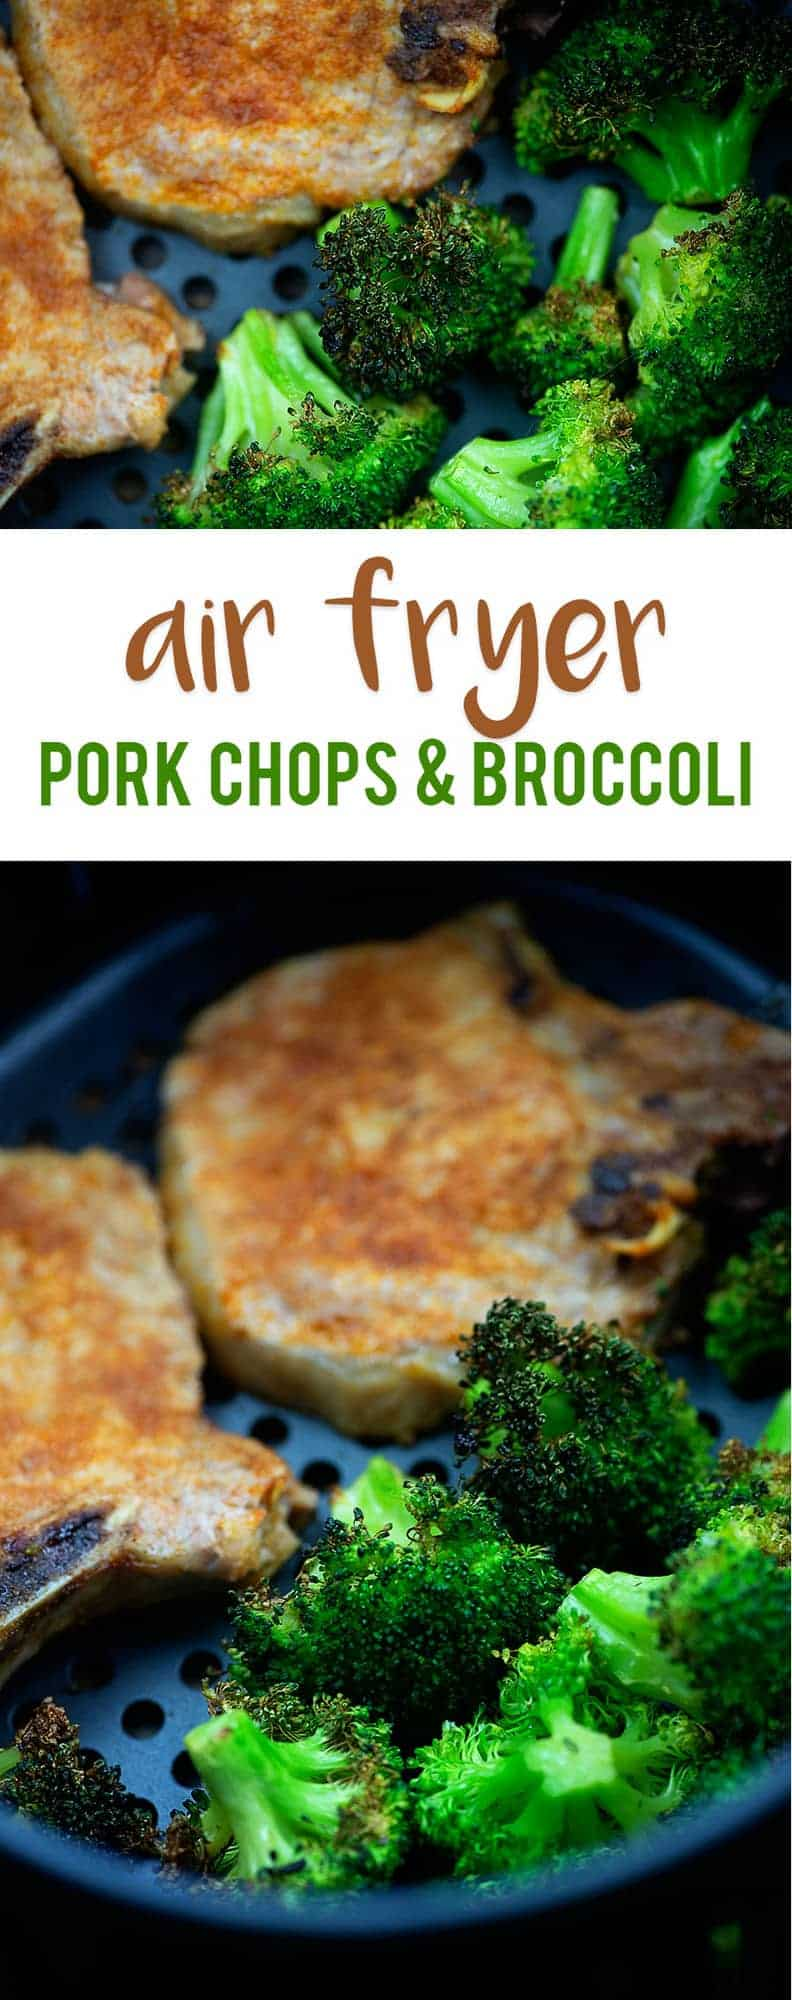 broccoli and pork chops just removed from the air fryer